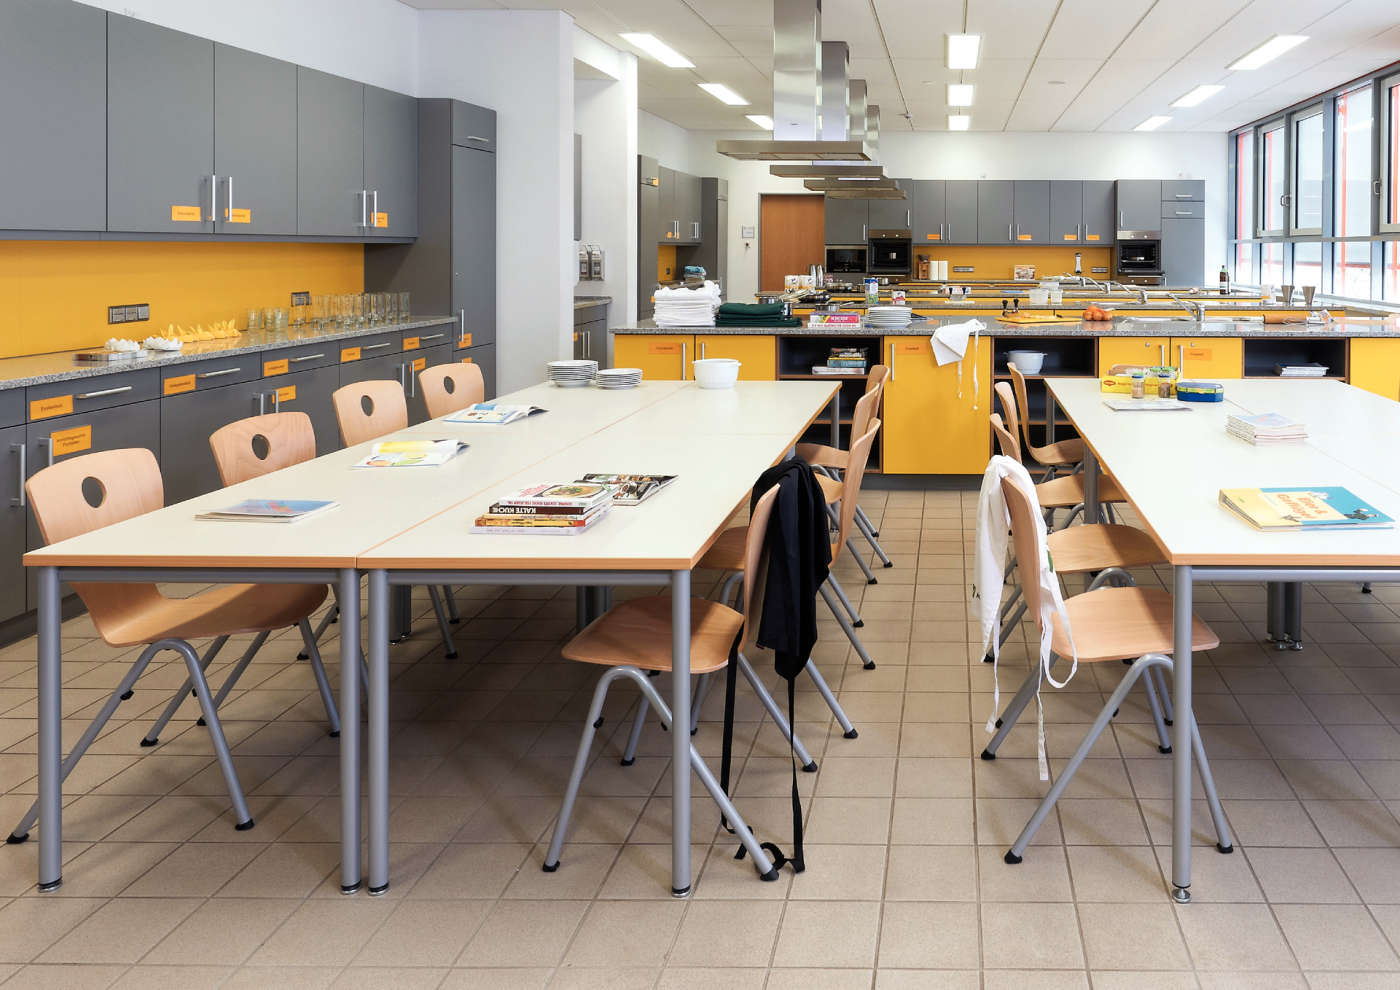 Using VSu0027s Highly Stable Multipurpose NetWork Tables And Compass VF Or  WD 39 Chairs The Classroom Kitchen Can Be Easily Equipped With The Required  Furniture ...